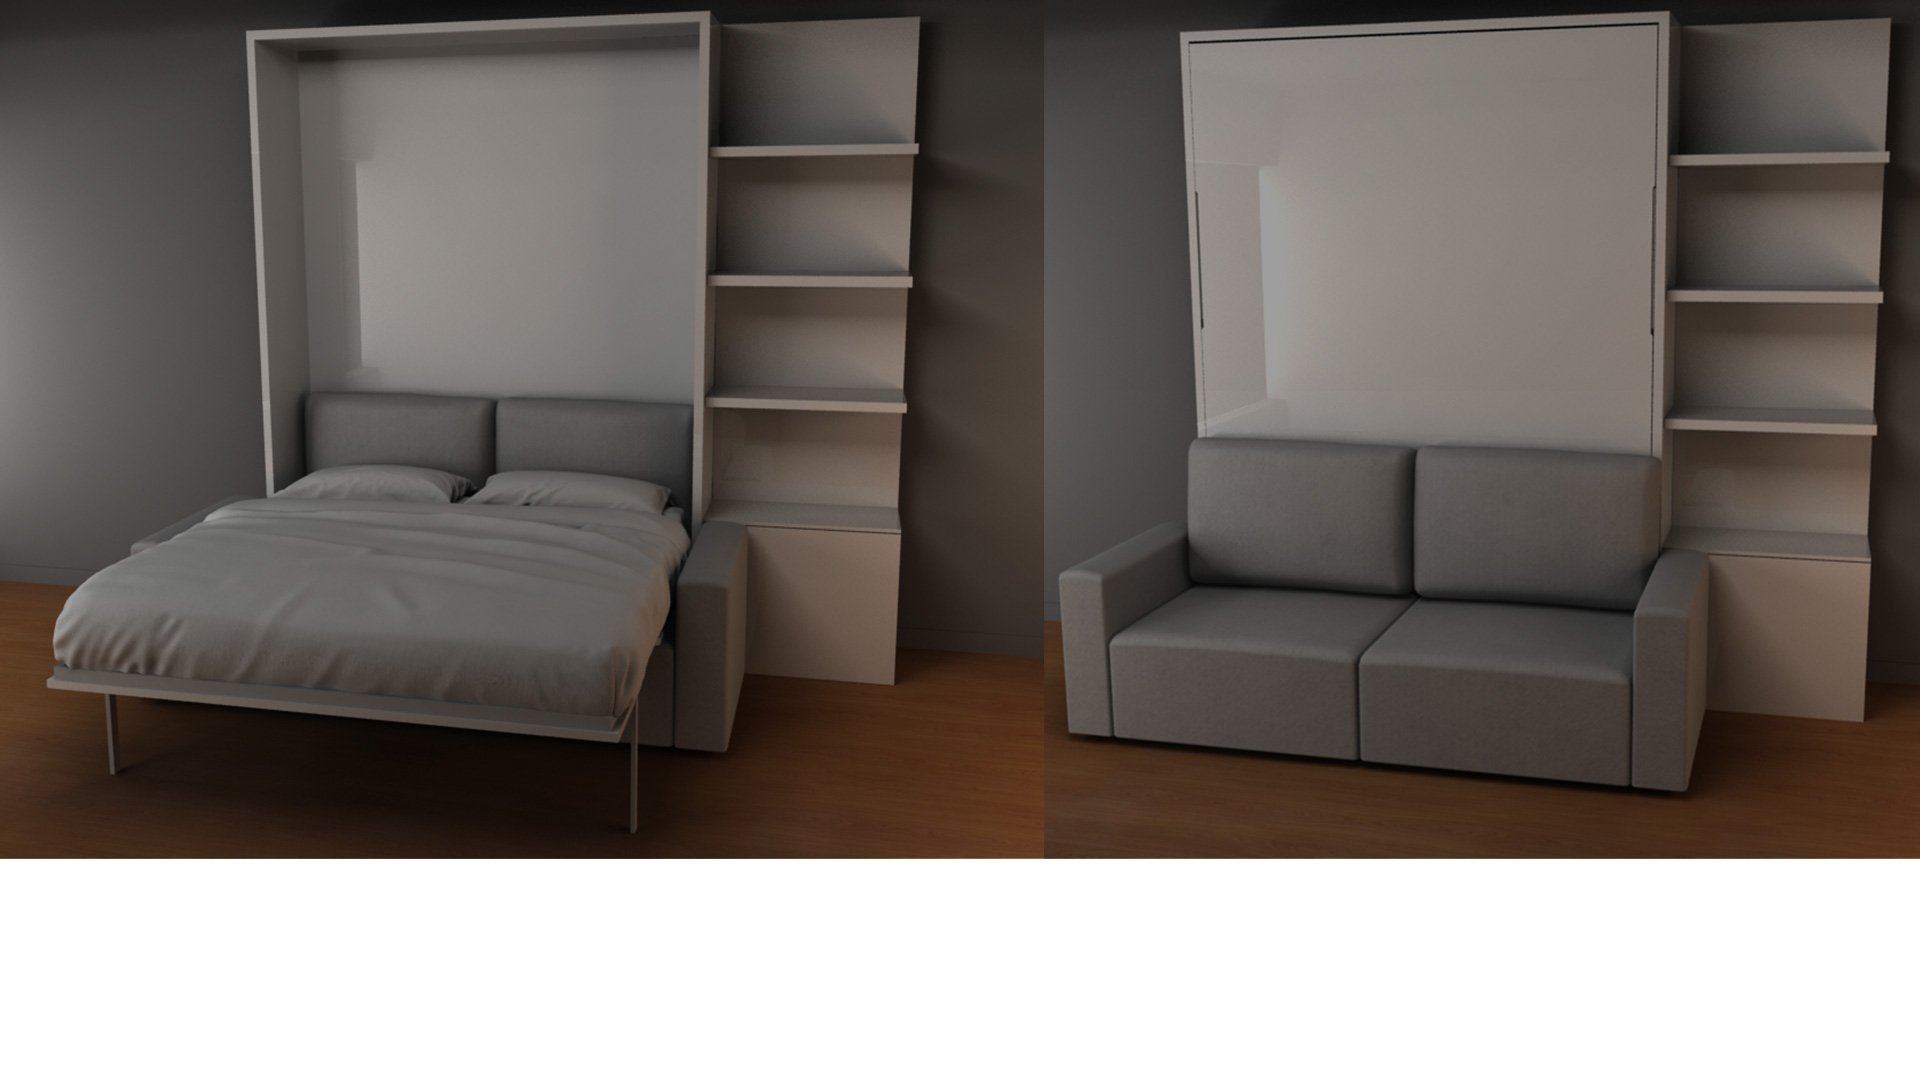 Gentil ... Space Saving Needs: From Vertical And Horizontal Designs To Compacting  Sofas Or Sofas With Storage Browse And Shop Our Murphy Bed Sofa Collection  Here.